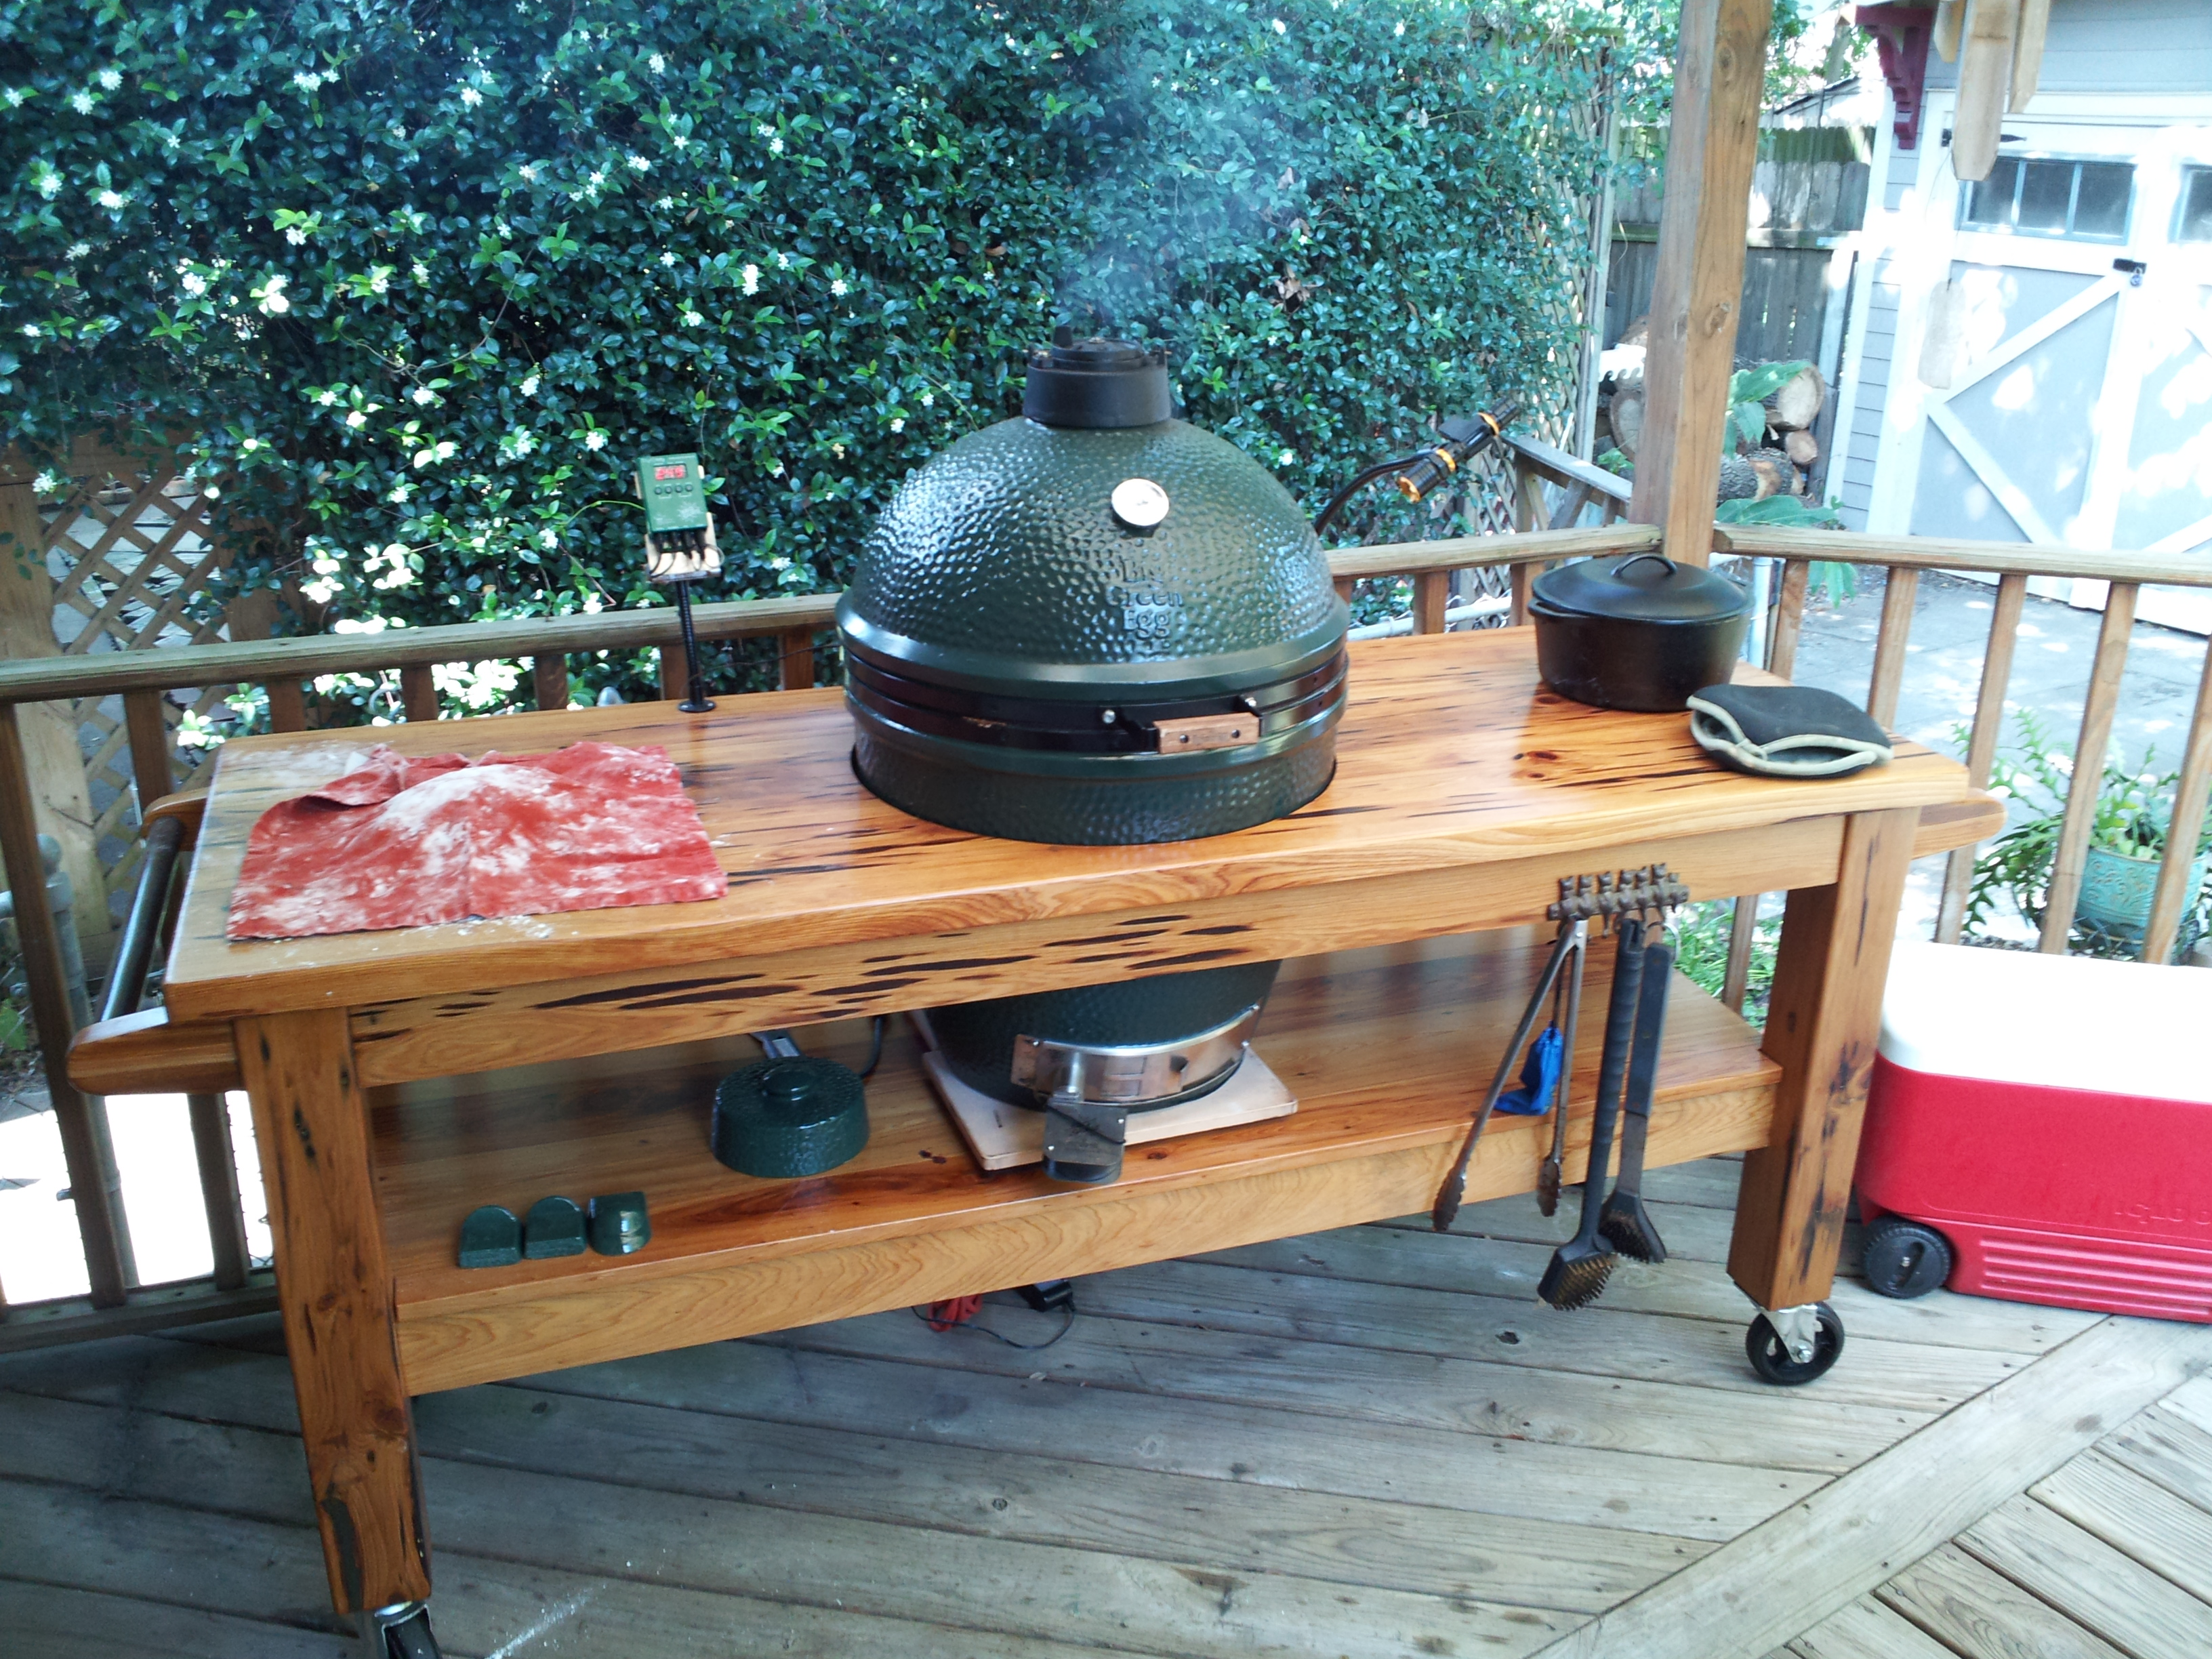 Wood or Stainless Steel table? — Big Green Egg - EGGhead ...